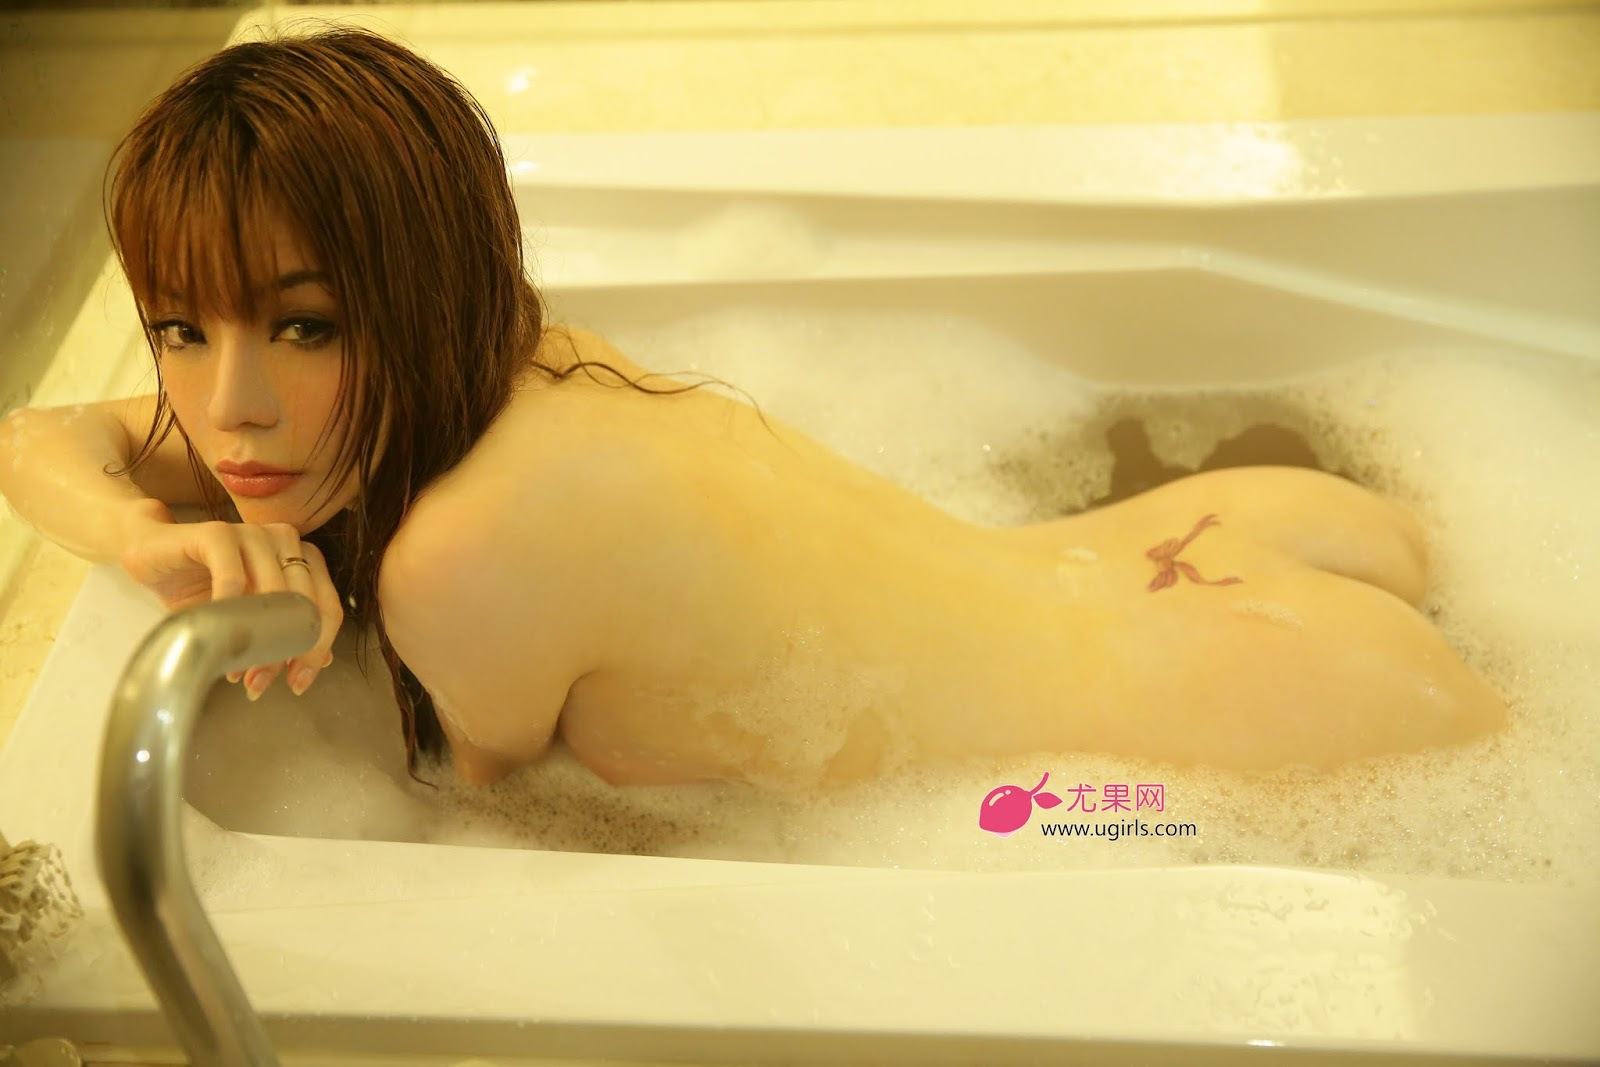 A14A1574 - Hot Nude UGIRLS NO.1 Gallery